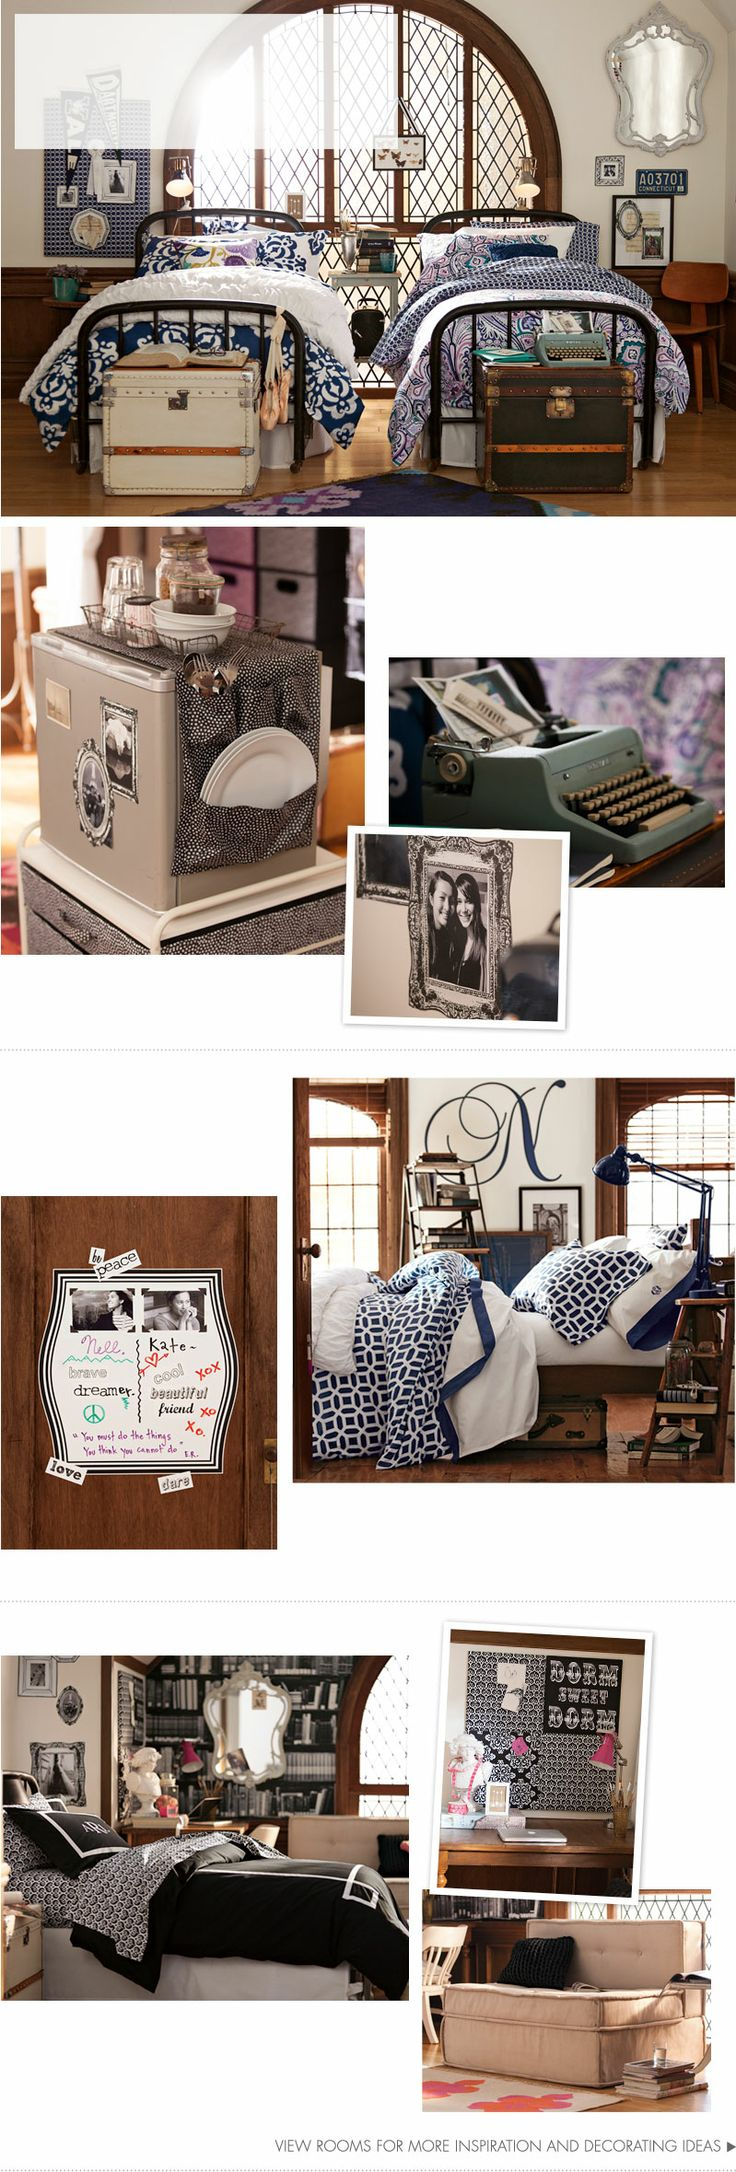 Dorm Room Ideas Decorating Ideas For Your Dorm Room